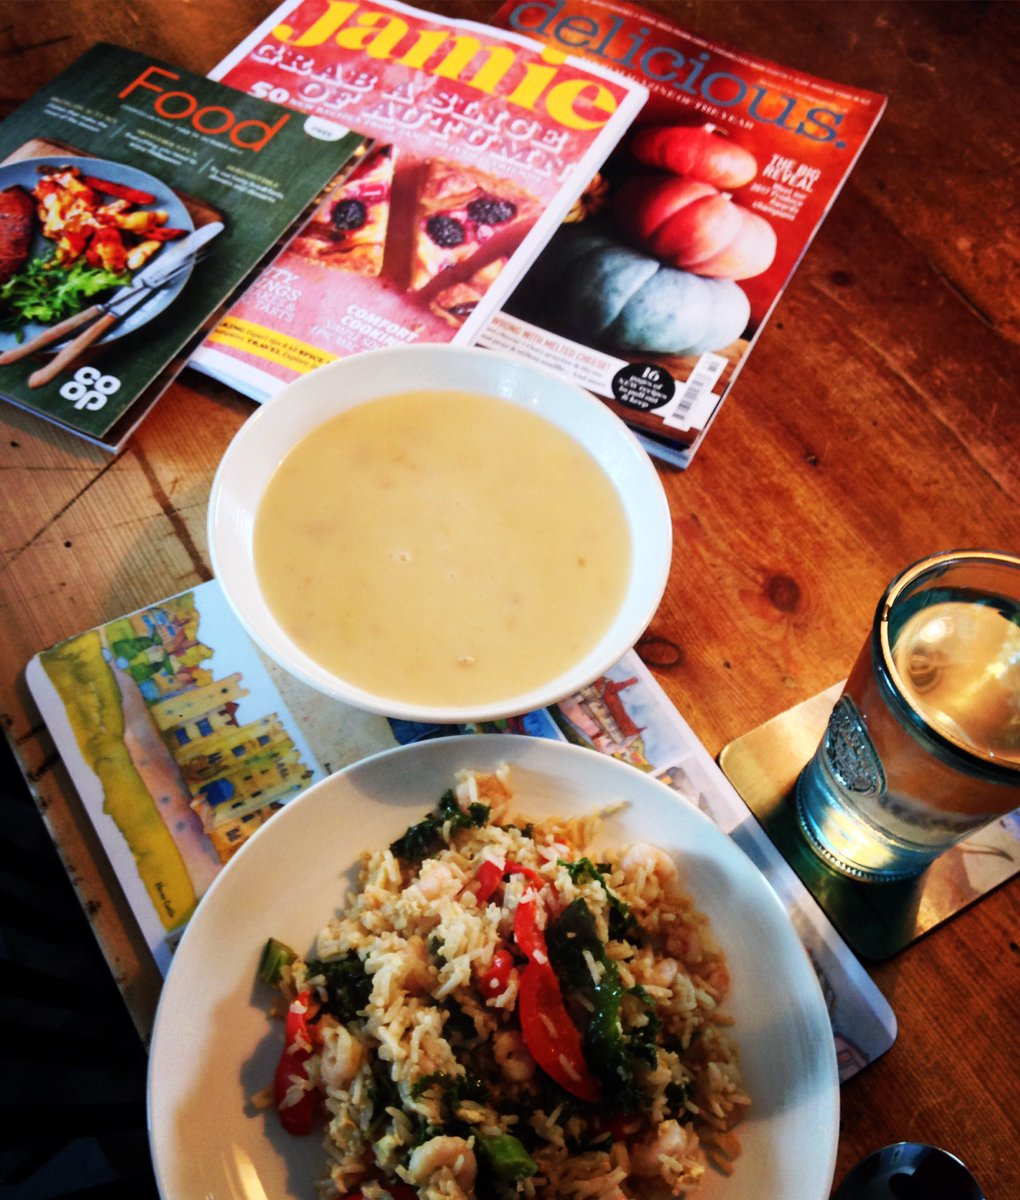 Sarah jane bell on twitter perfect lunch break chicken soup sarah jane bell on twitter perfect lunch break chicken soup homemade egg fried rice plus some fab autumn reading material jamieoliver deliciousmag ccuart Choice Image